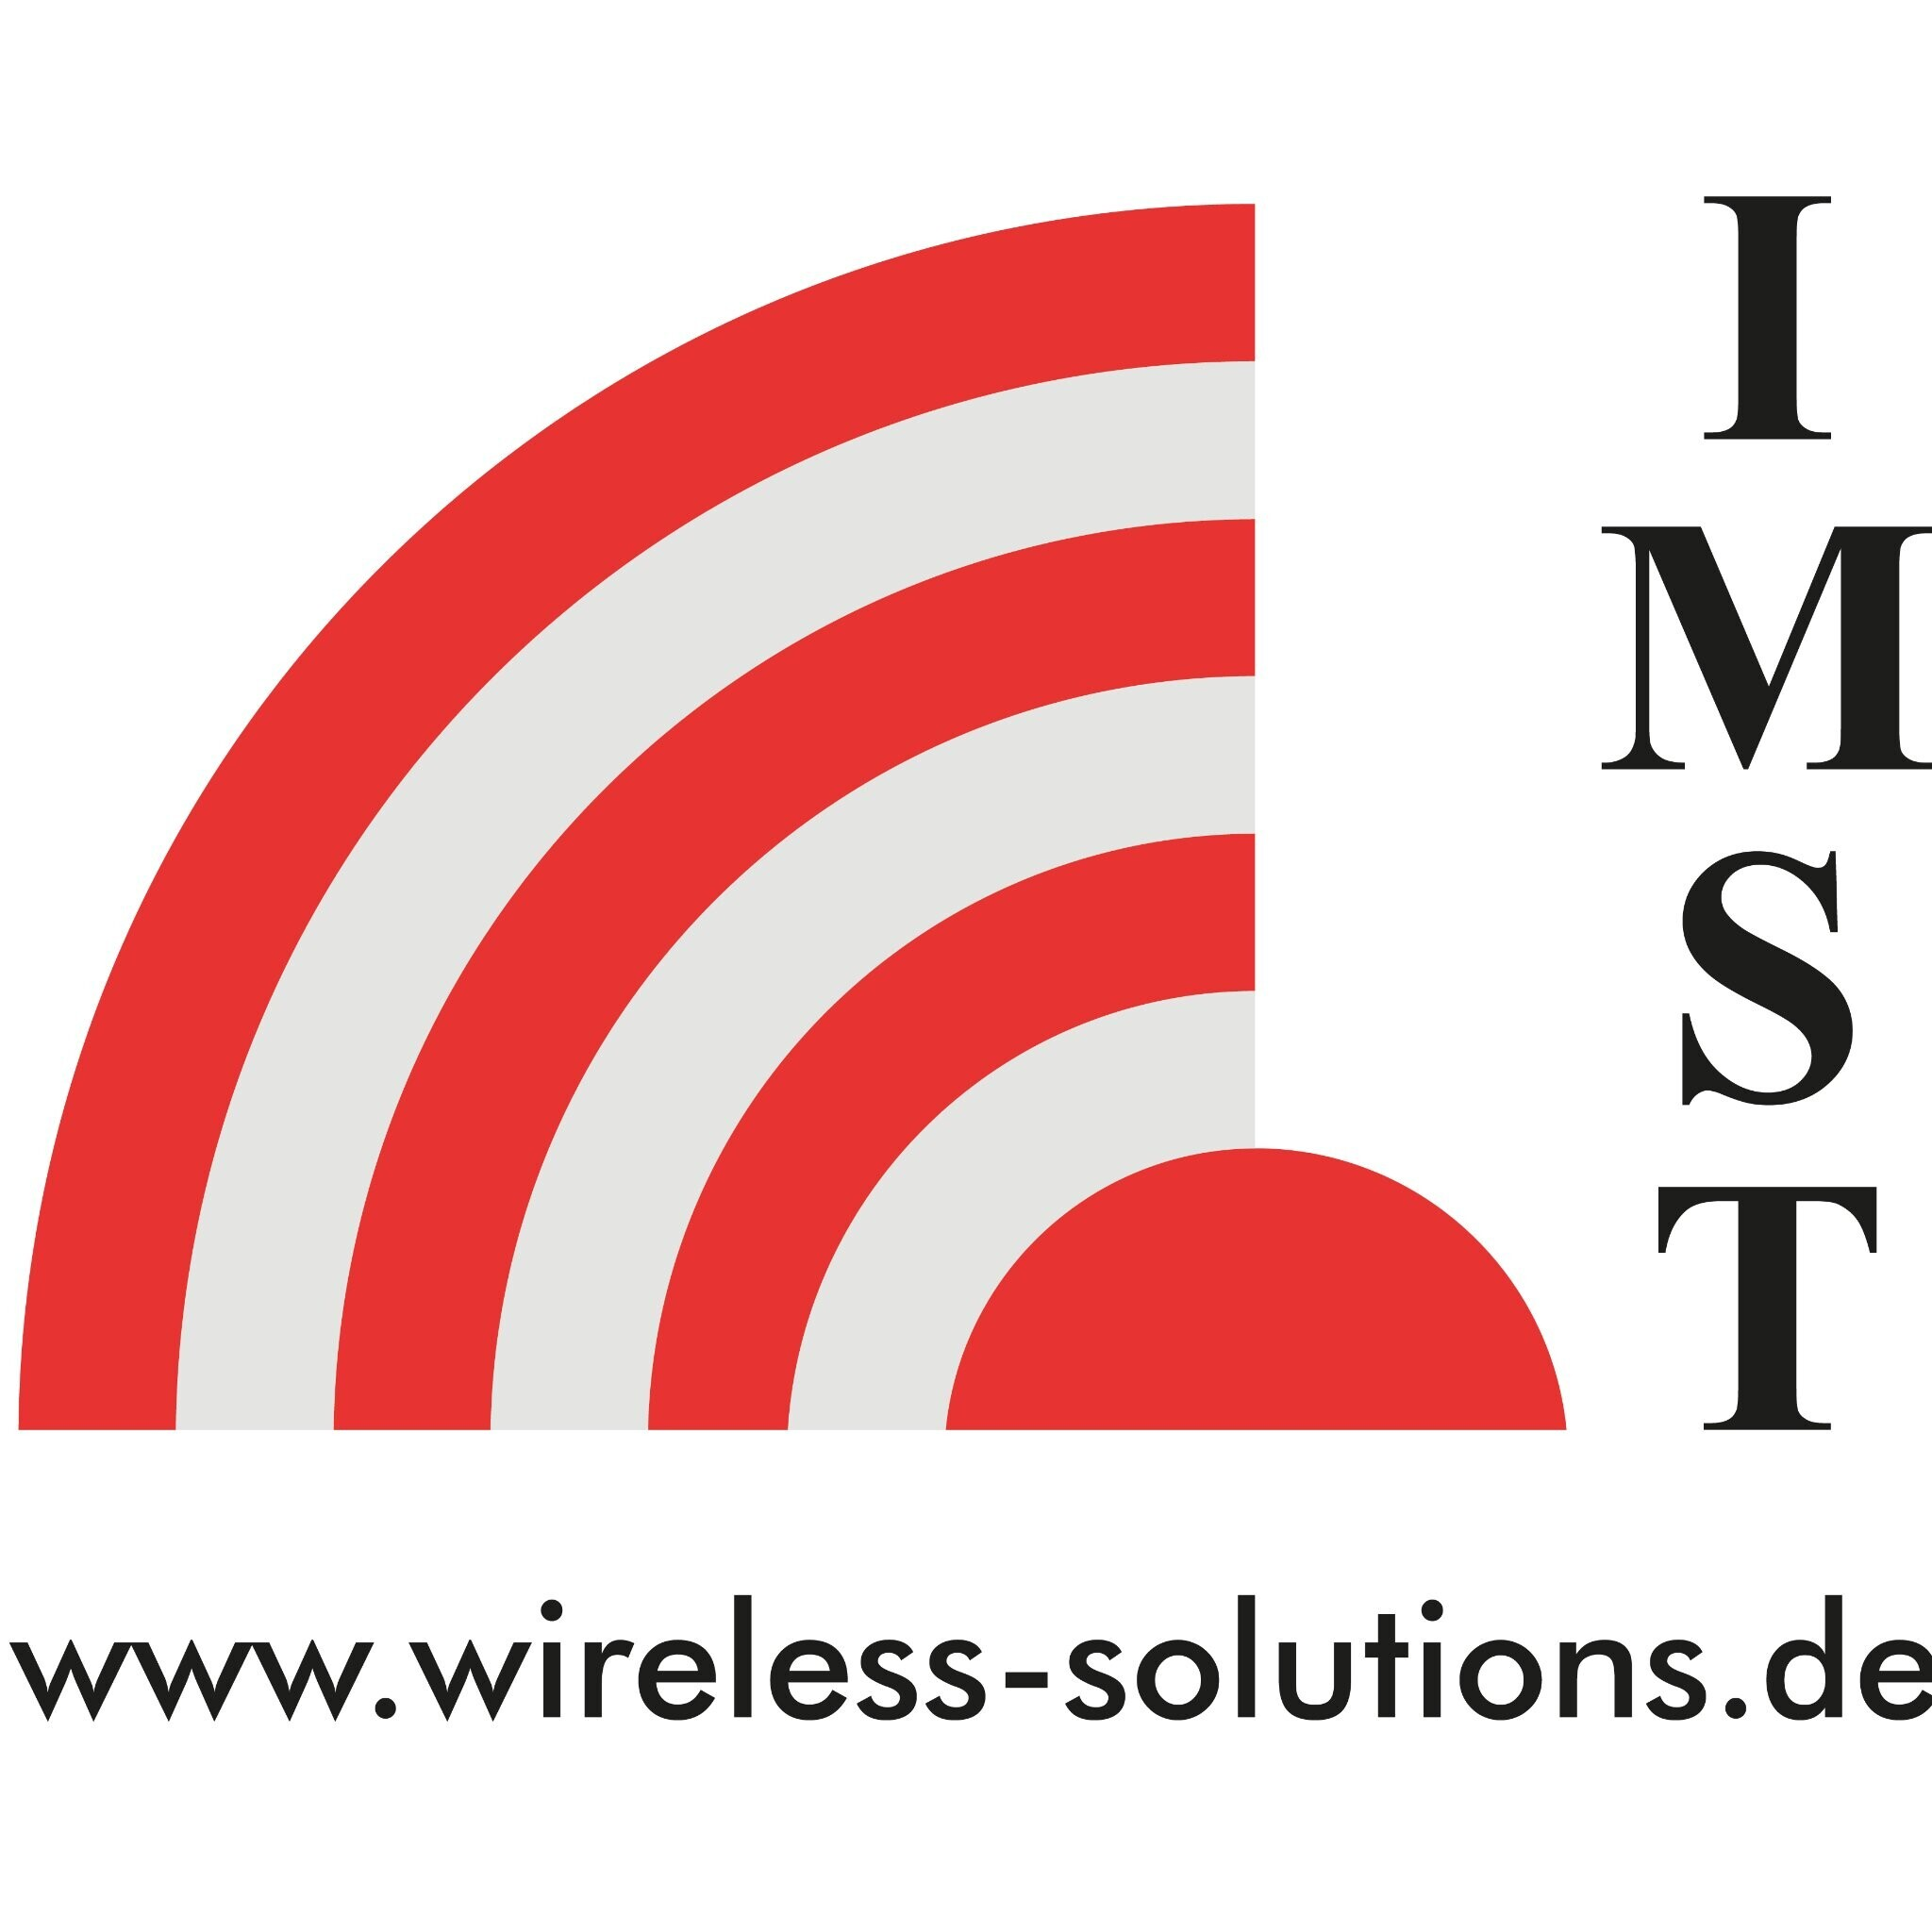 IoT by IMST